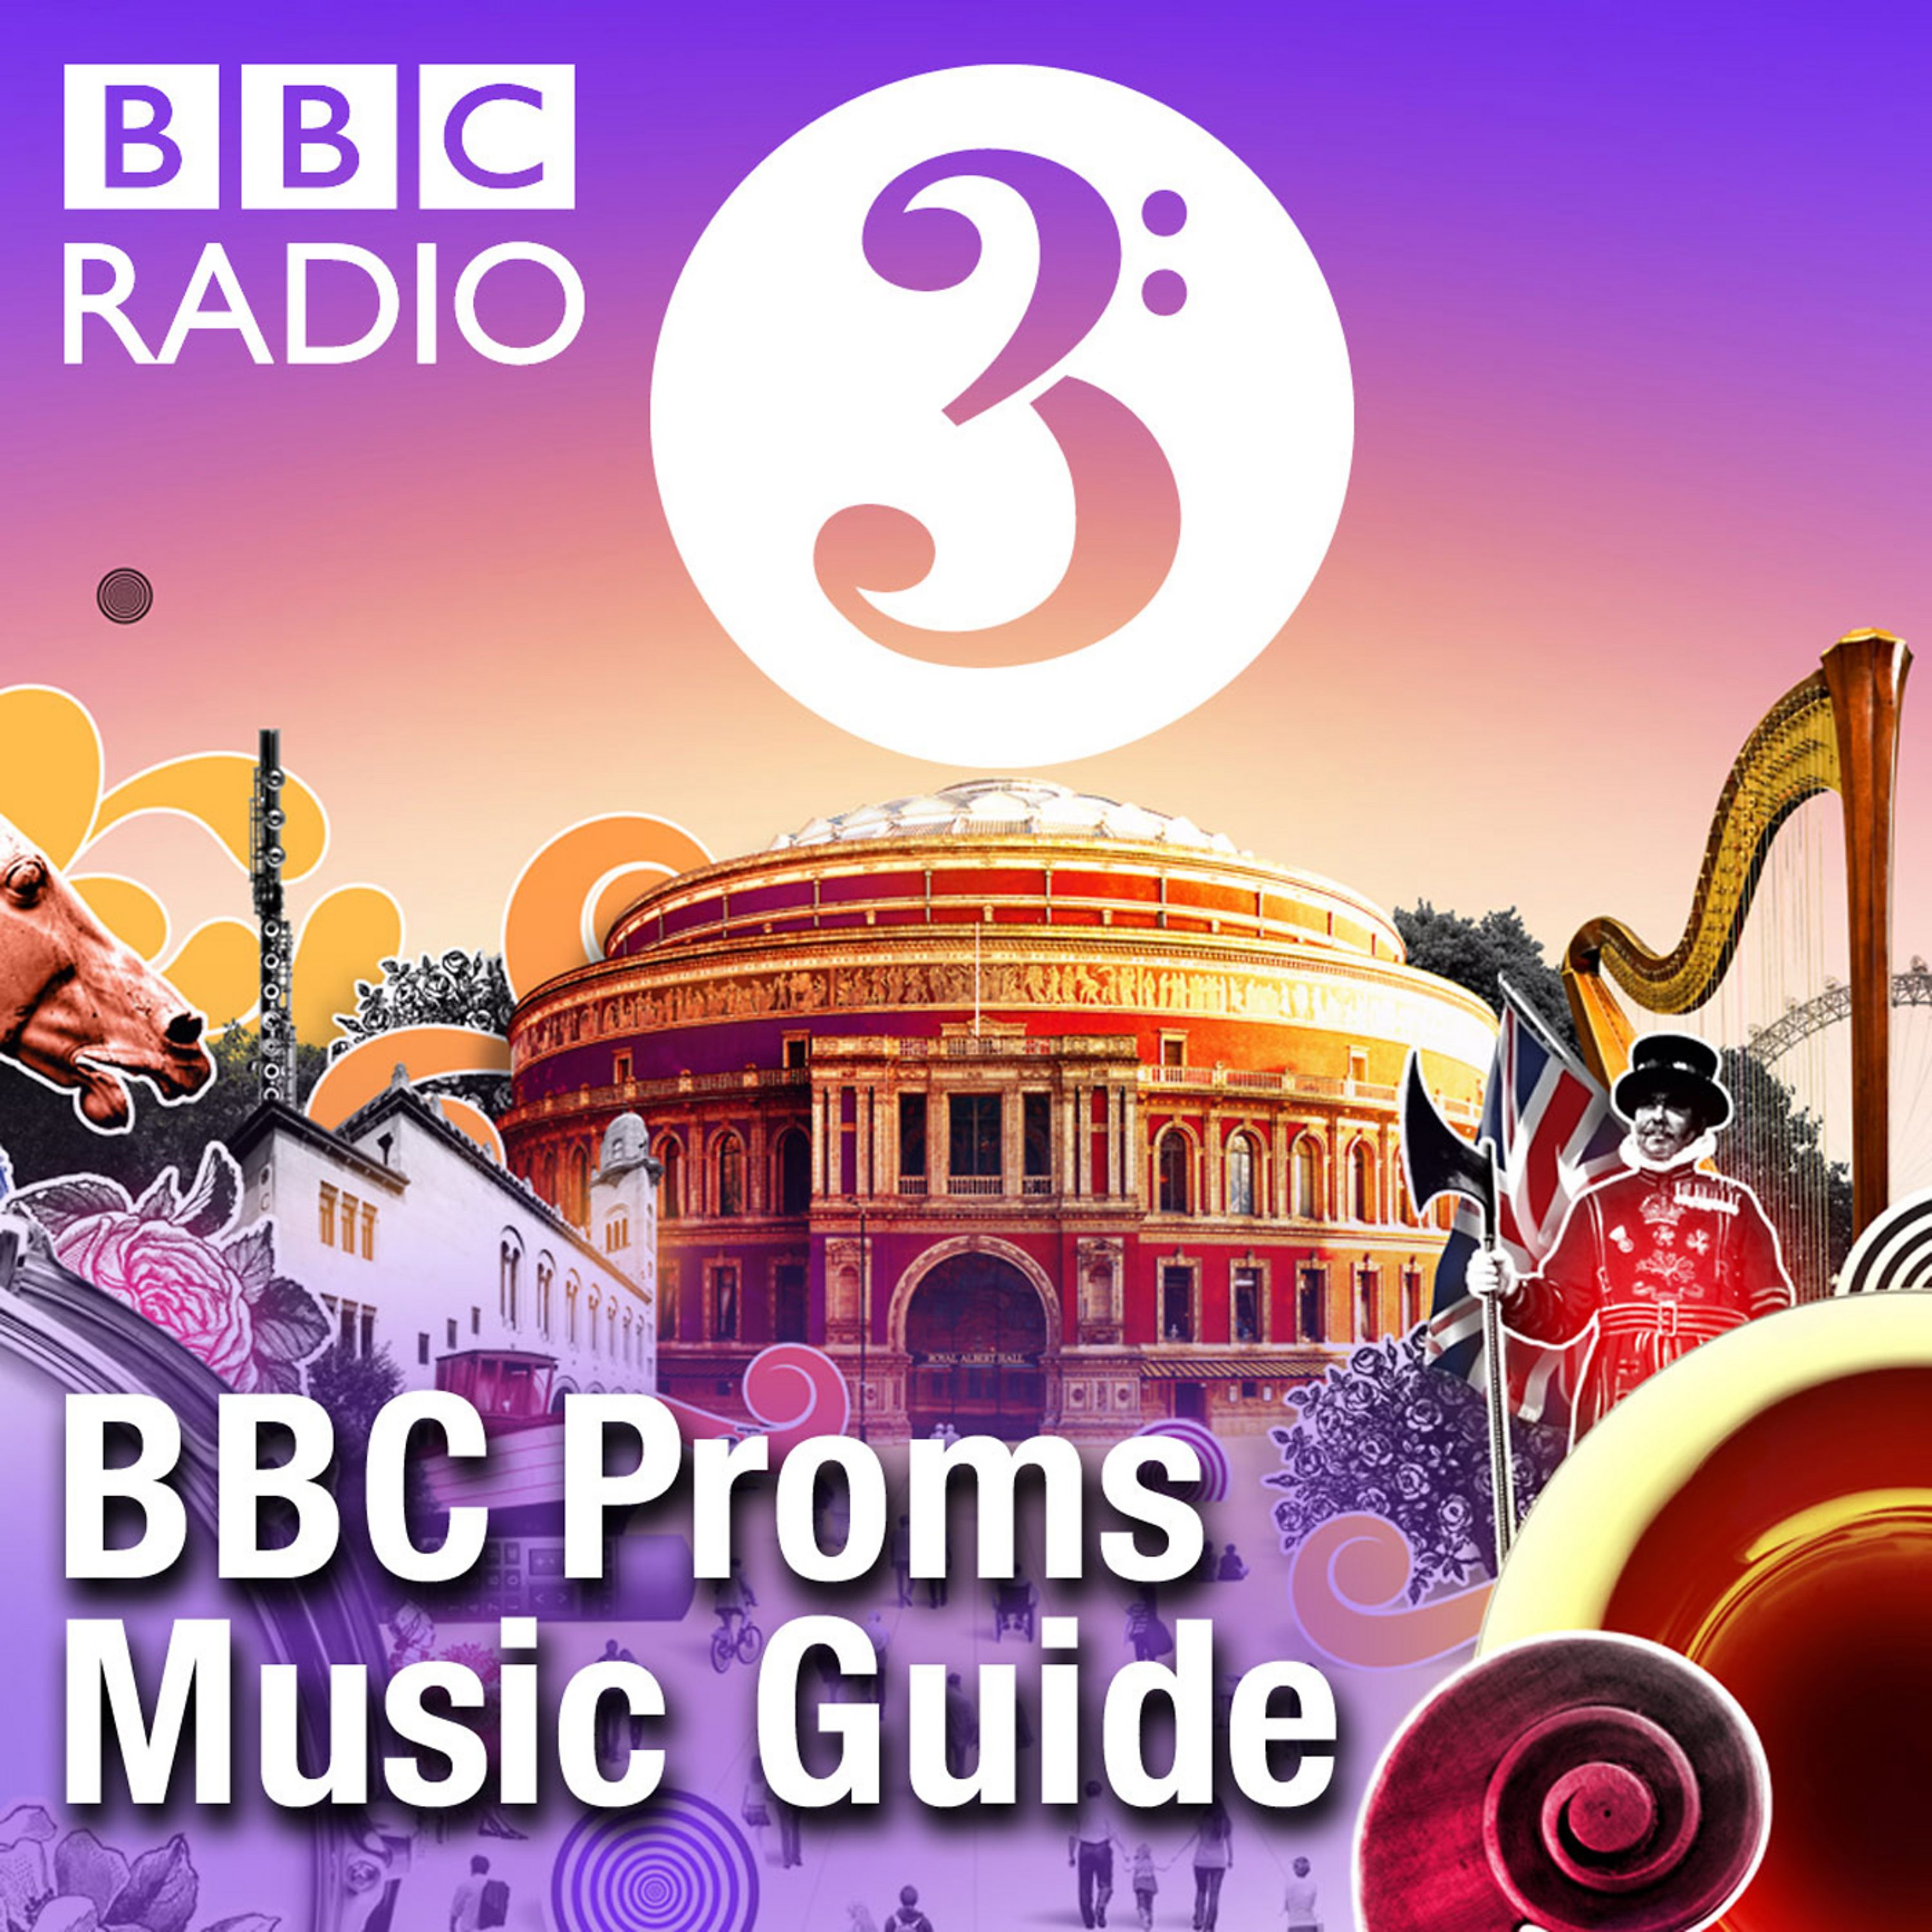 BBC Proms (TV Series 2009– ) - Frequently Asked Questions ...